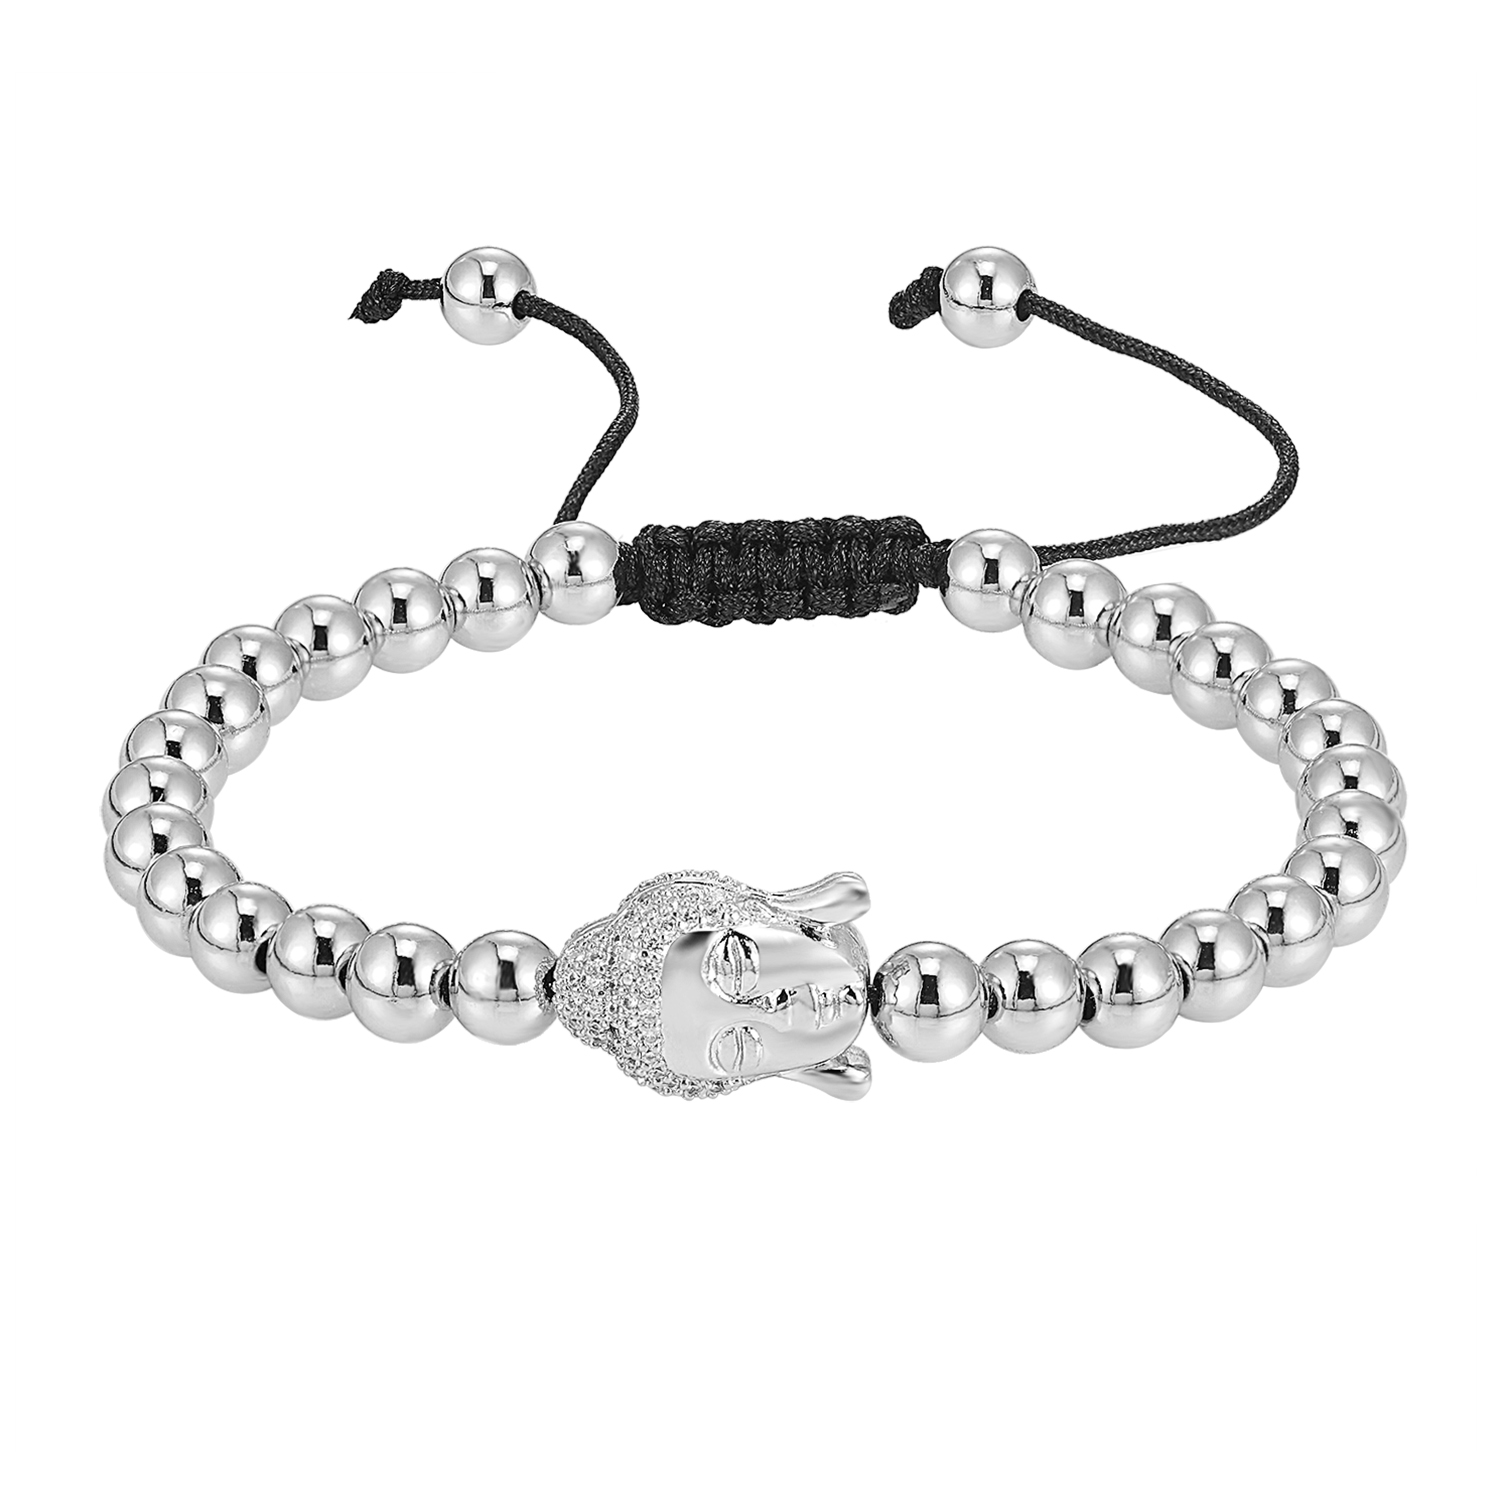 Silver Tone Bead Ball Link Bracelets Buddha Design Simulated Diamonds Men Womens